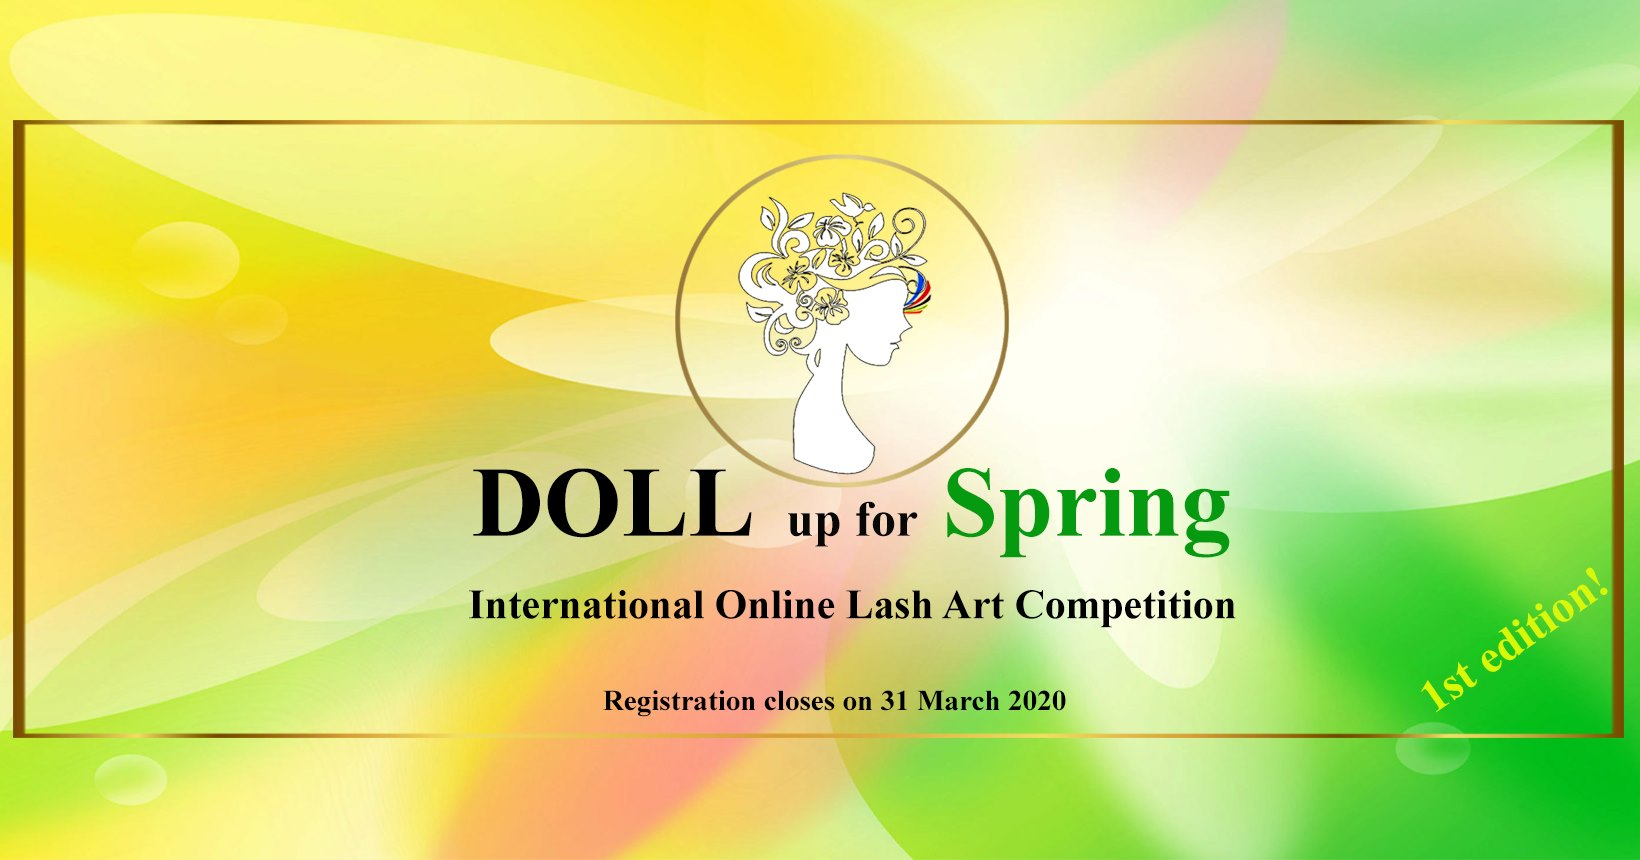 Doll up for spring